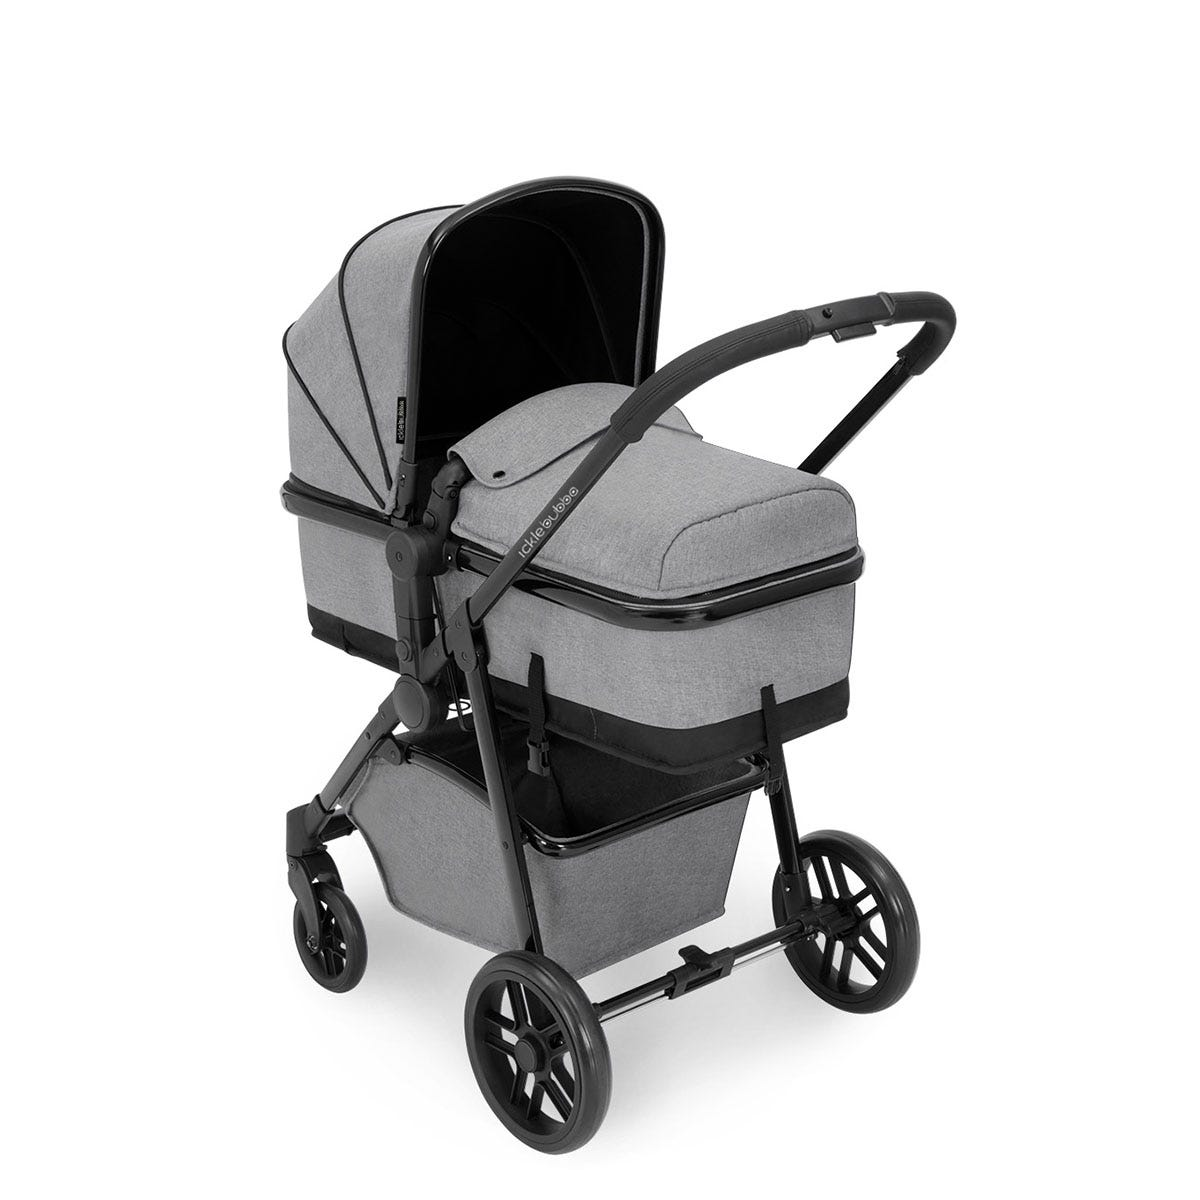 Ickle Bubba Moon i-Size 3 in 1 Travel System - Space Grey on Black with Black Handles